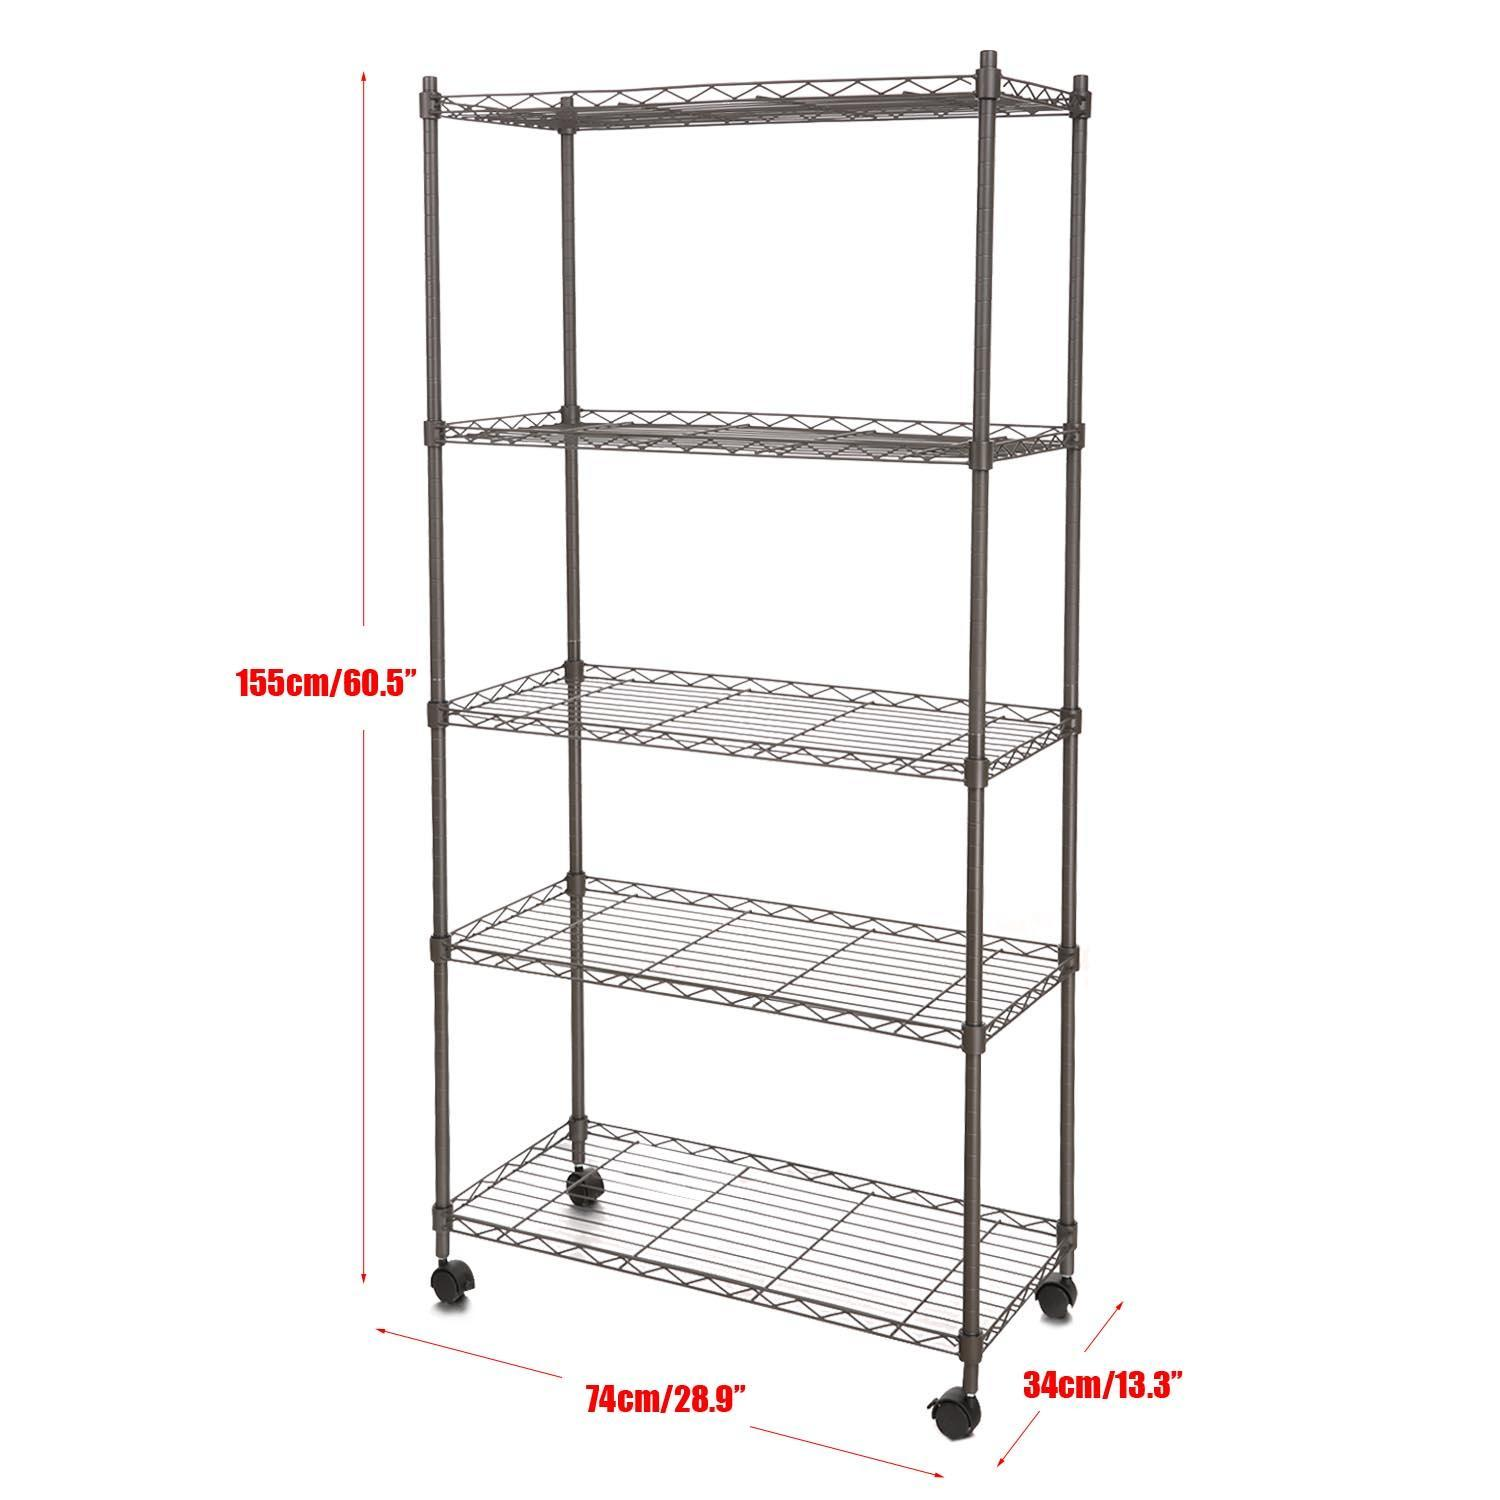 Adjustable Muscle Rack 5-Tier Wire Shelving with Wheels for Kitchen Bedroom Garage Muscle Rack WLT